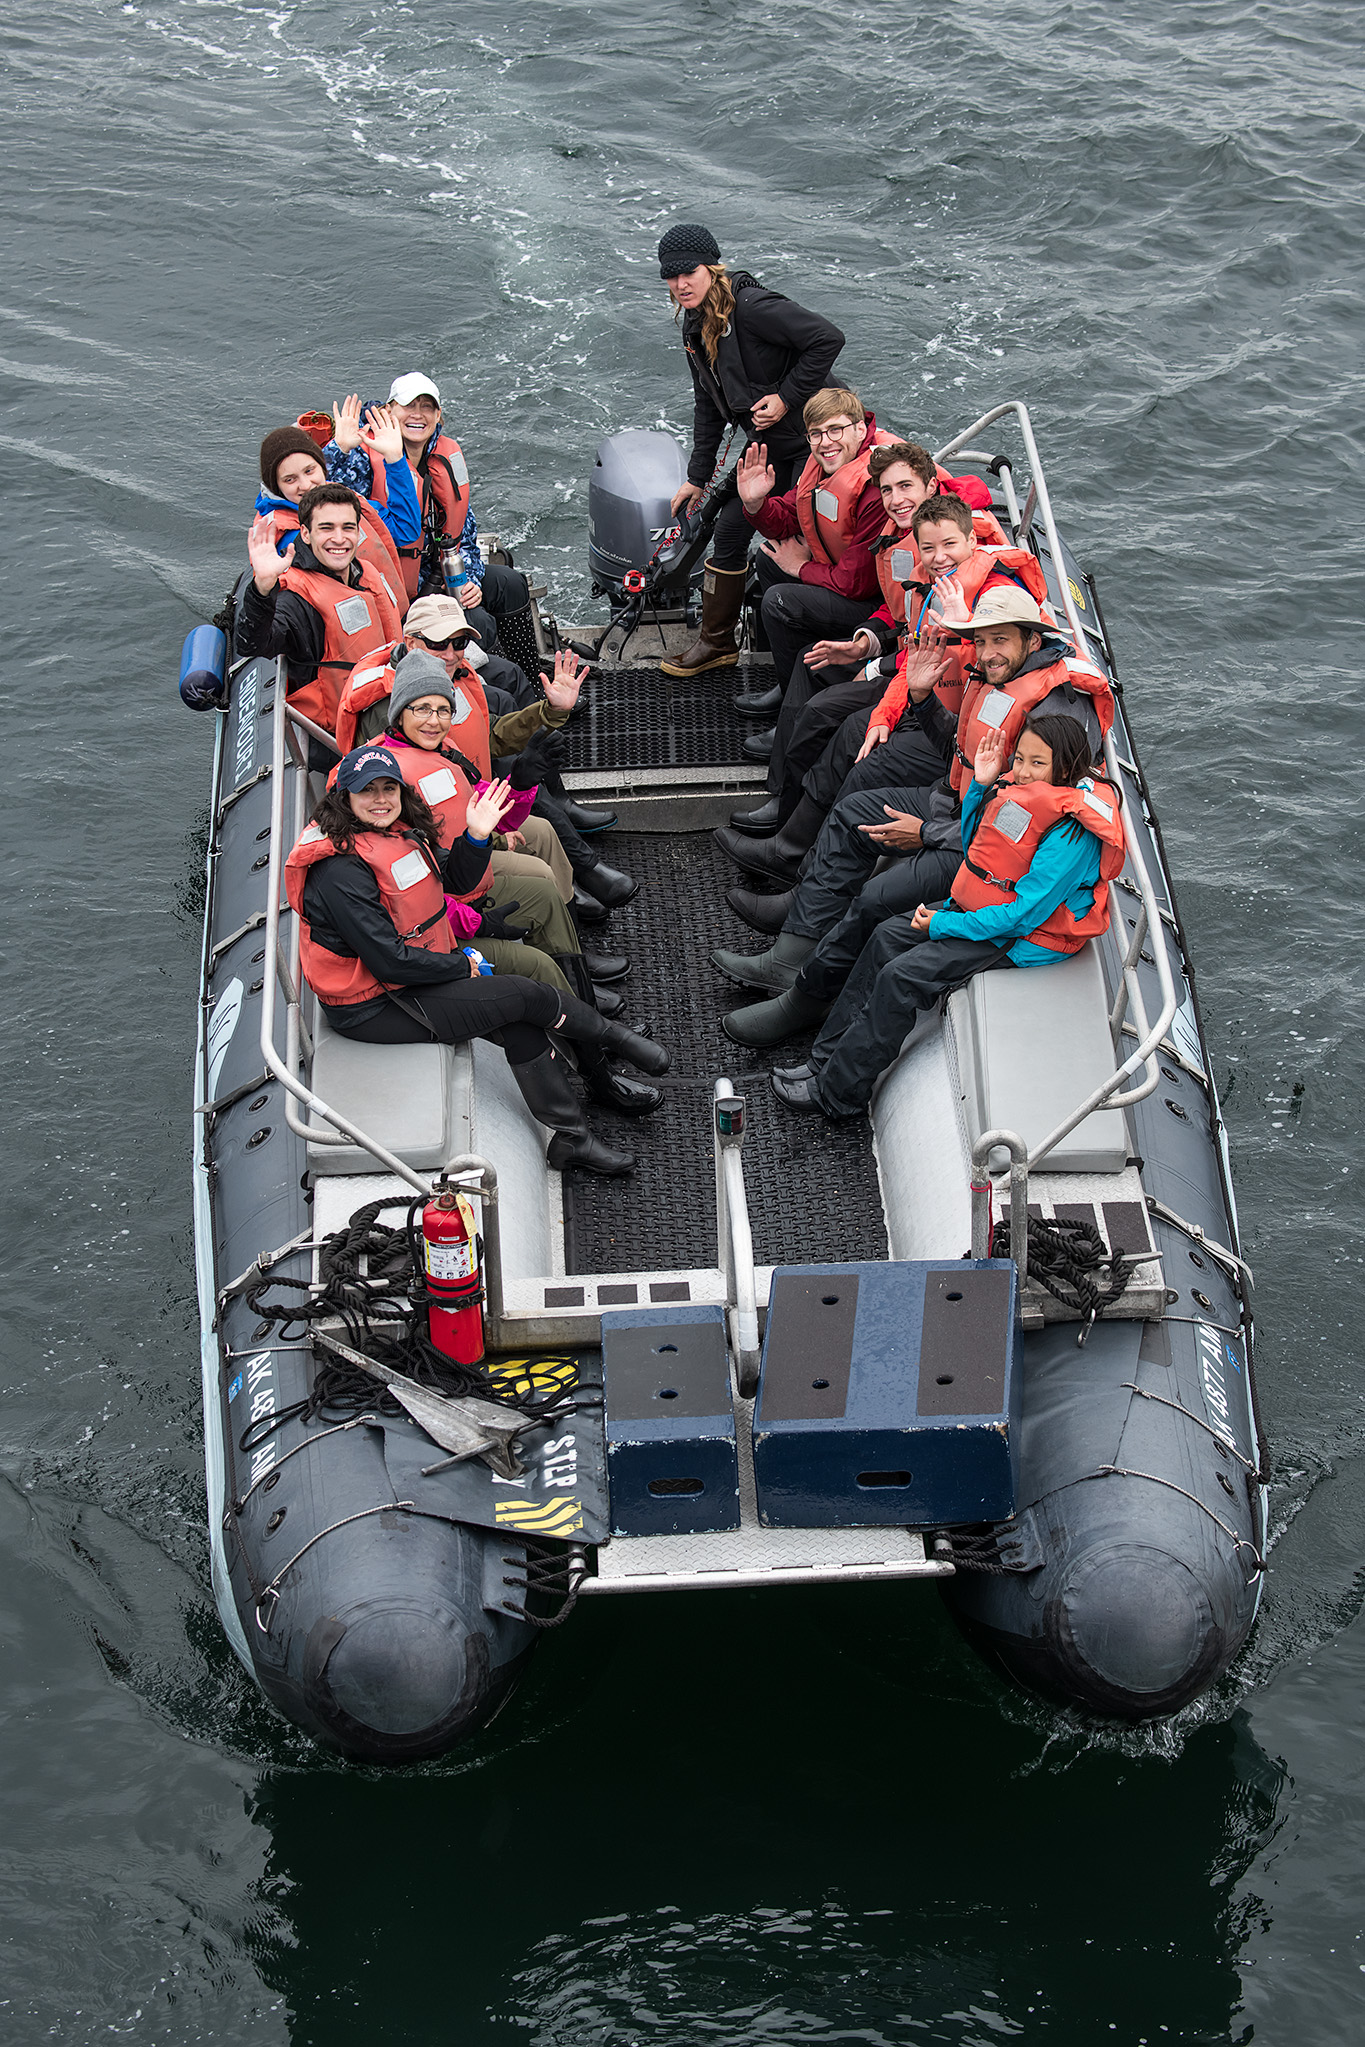 A group goes out on excursion in one of the skiff boats, with Alex at the helm